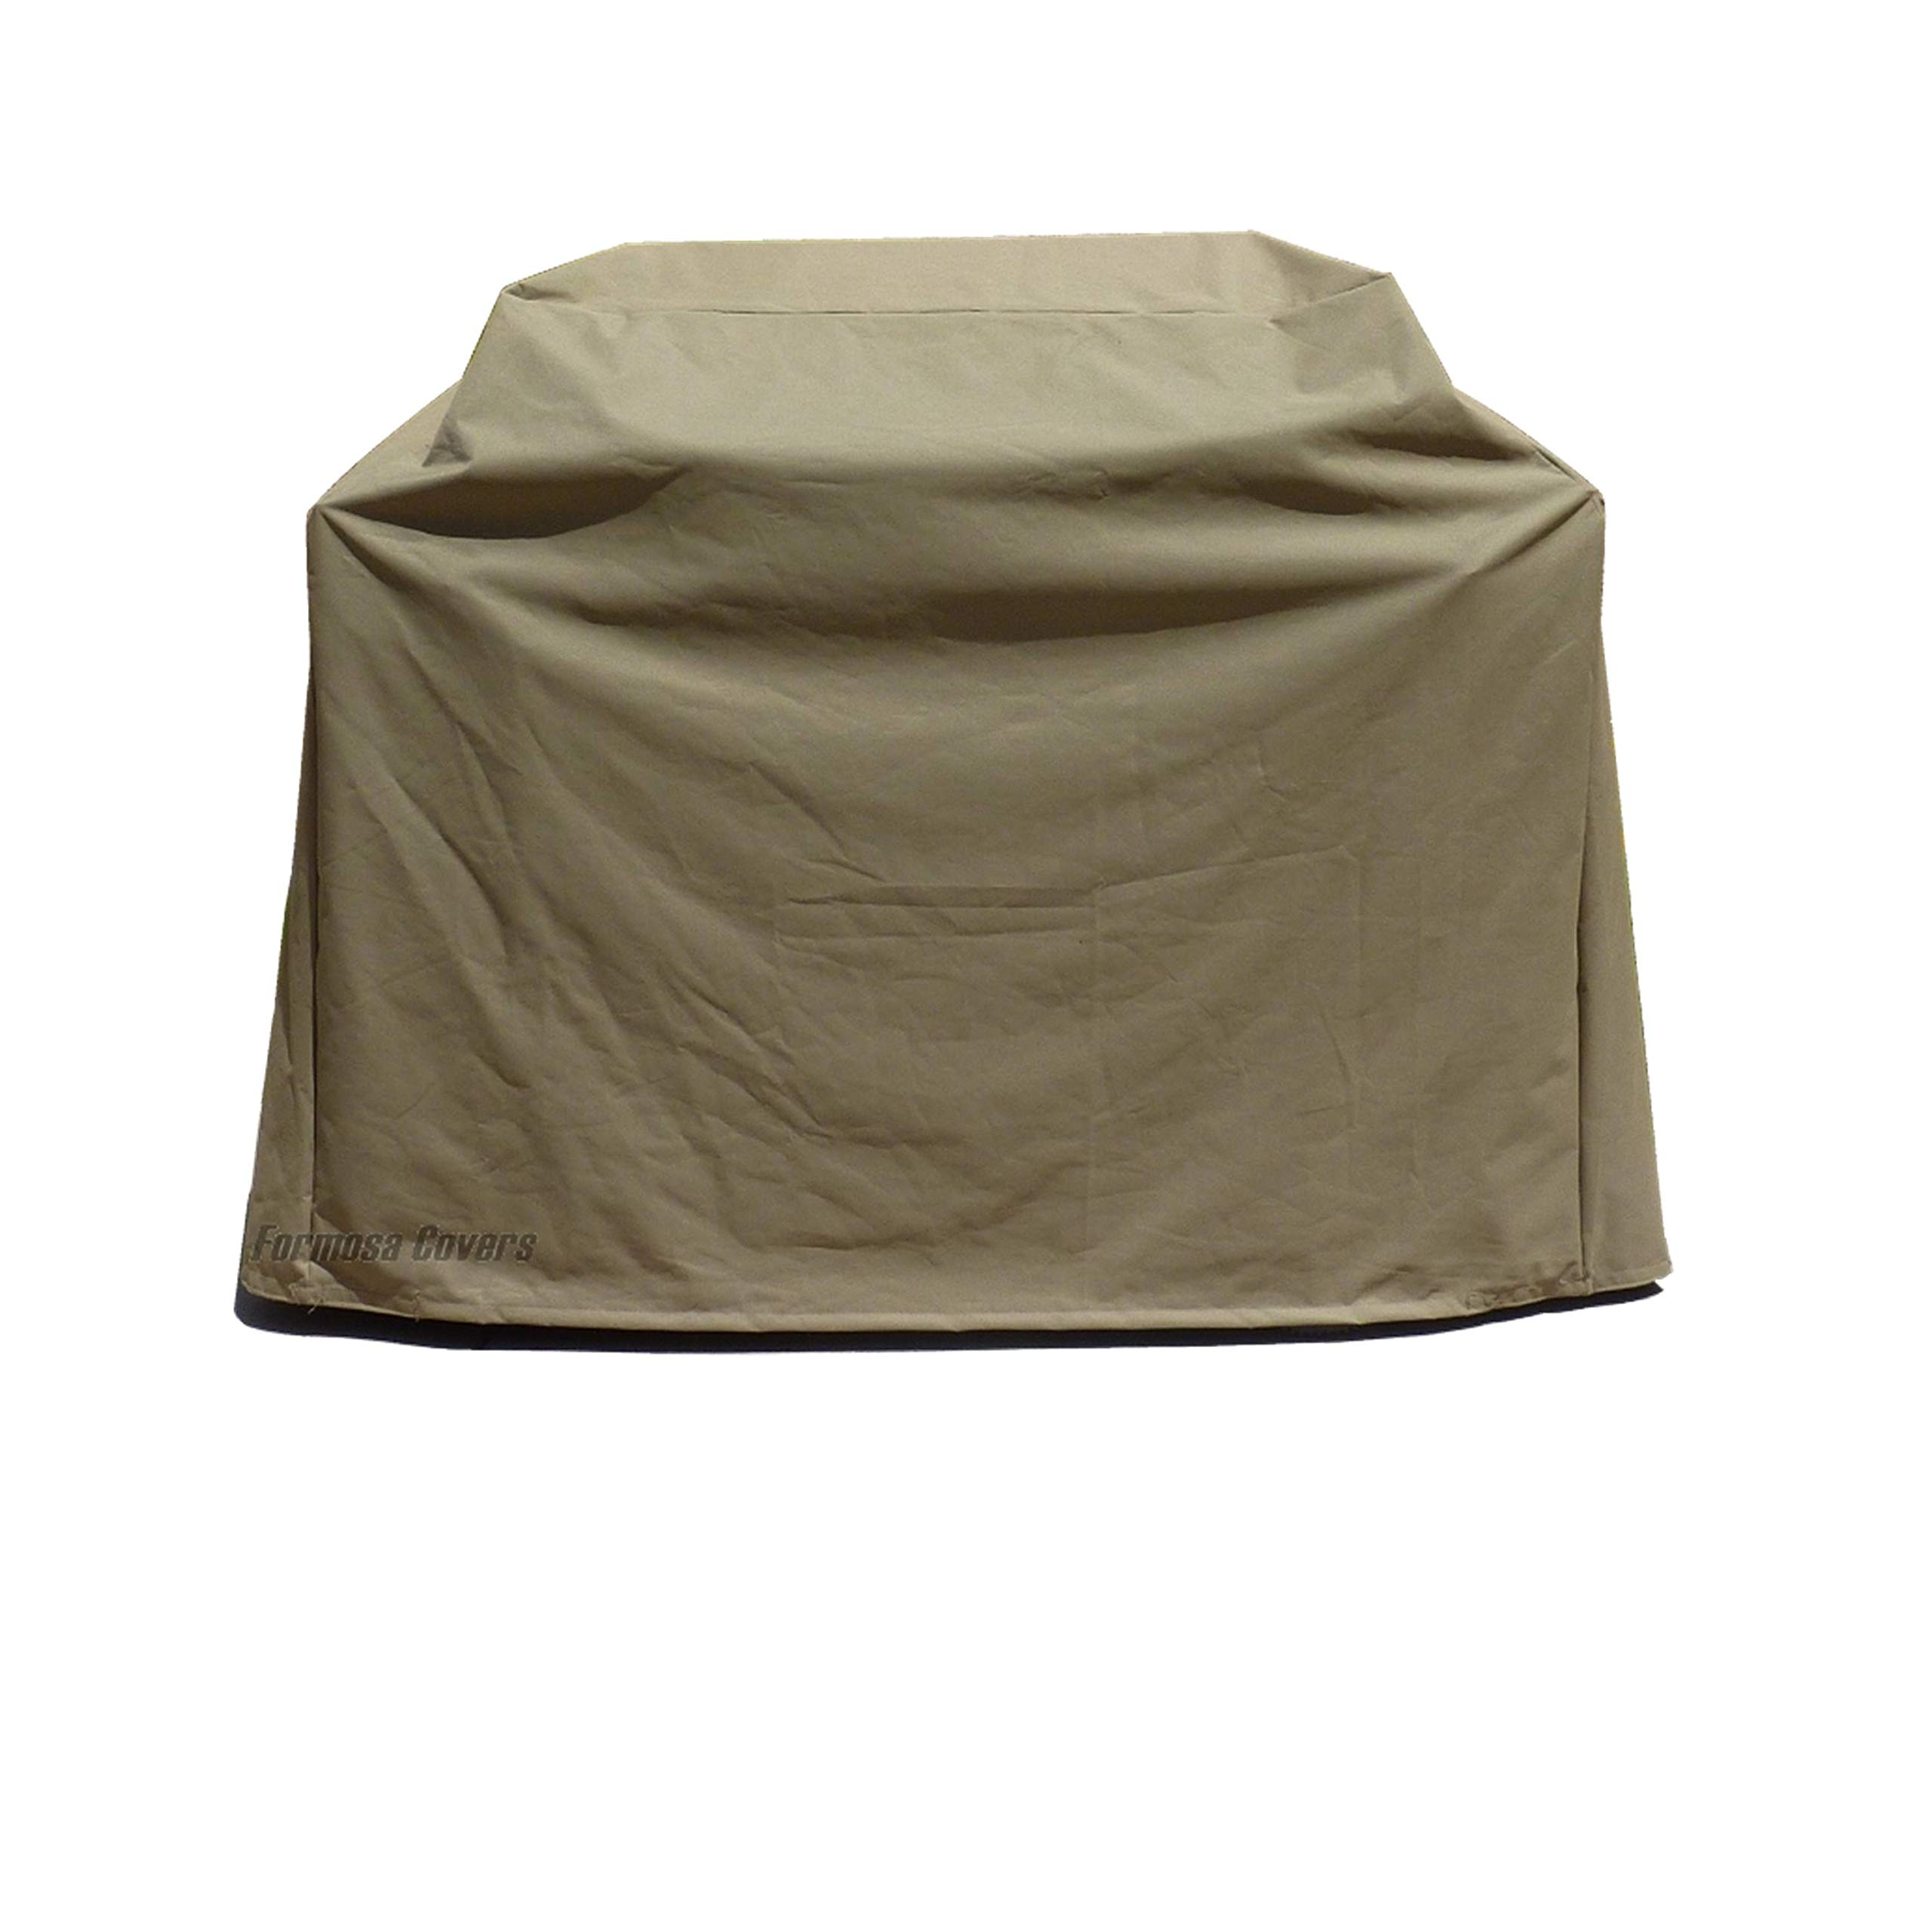 Formosa Covers Premium Tight Weave Heavy Gauge BBQ Grill Cover up to 84'' Long by Formosa Covers